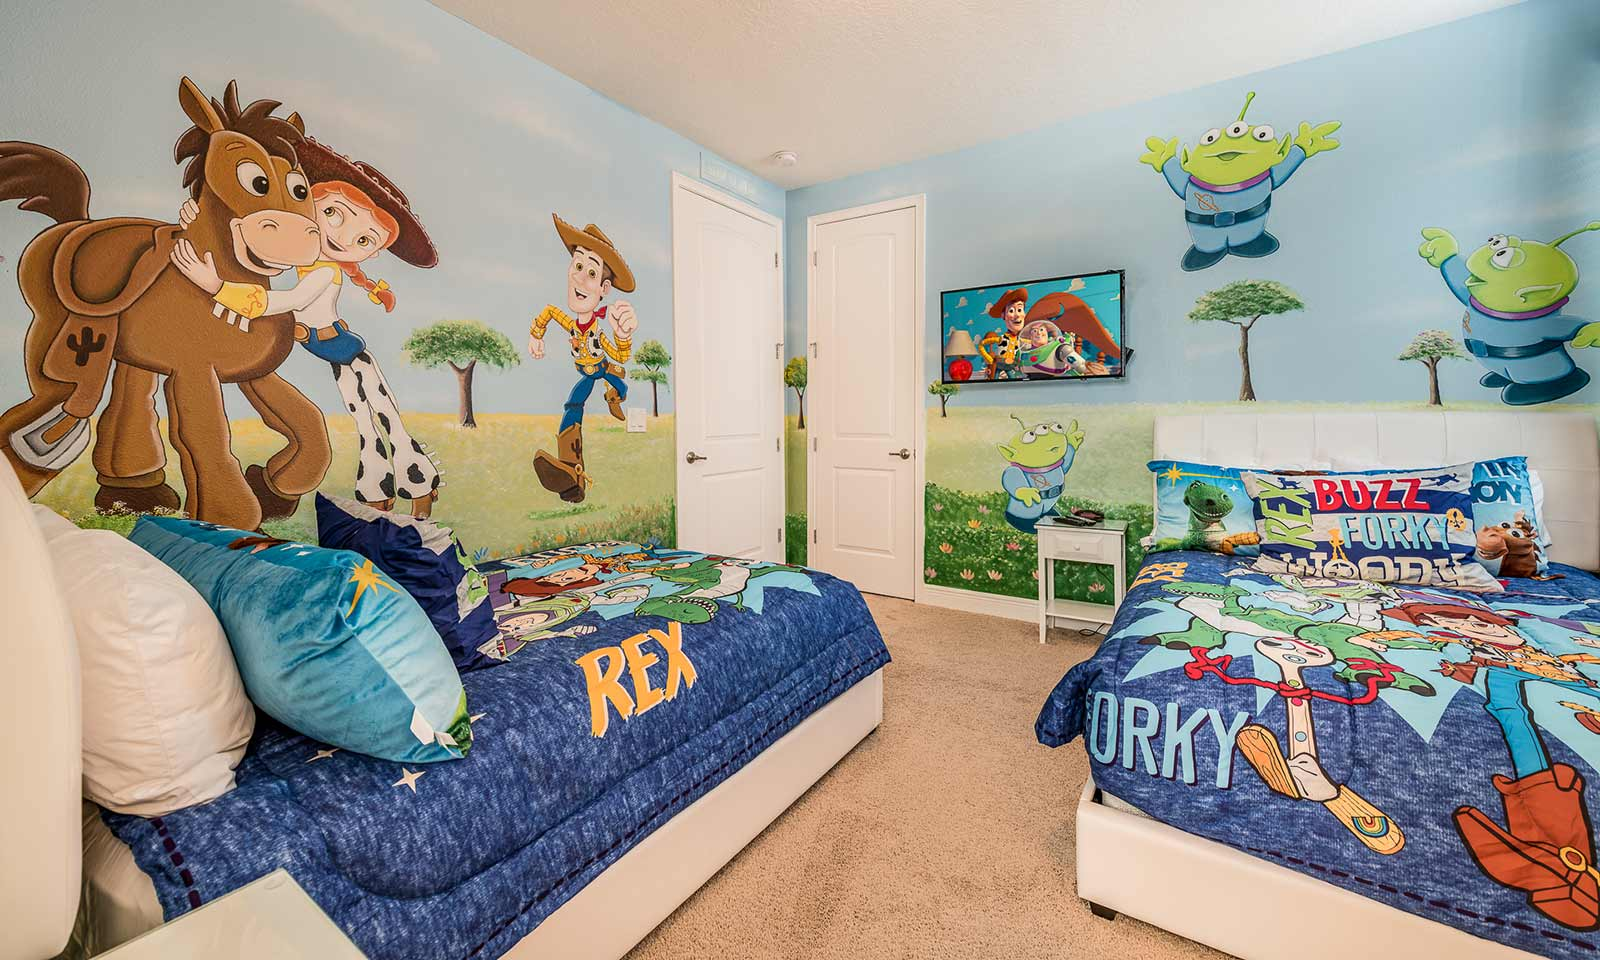 [amenities:themed-bedroom:2] Themed Bedroom